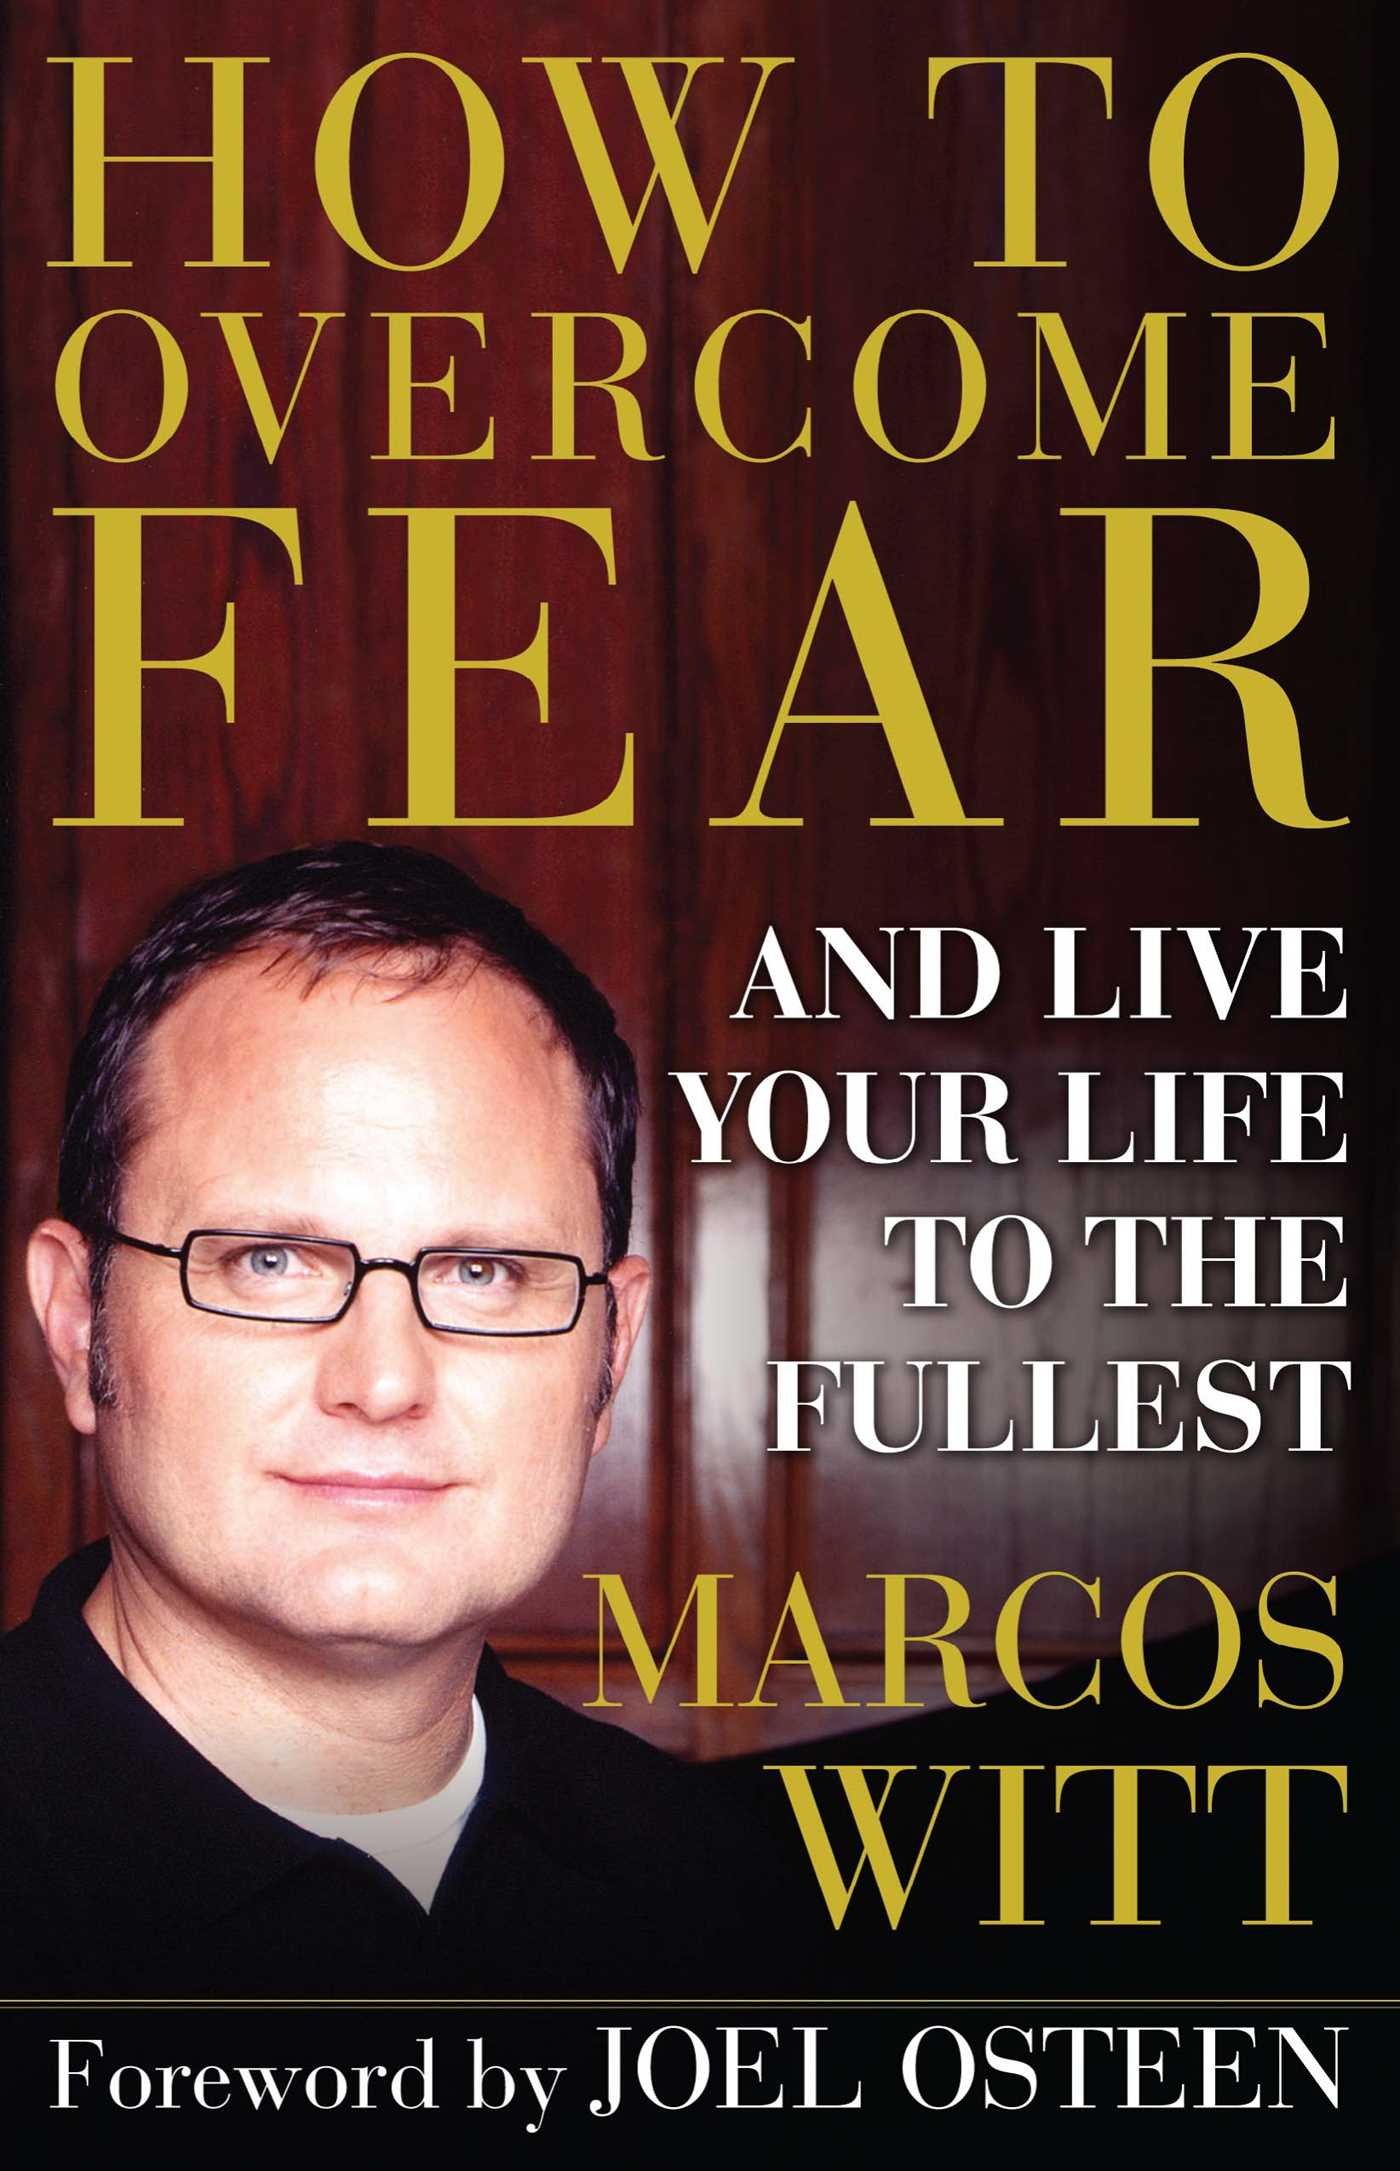 How to overcome fear 94